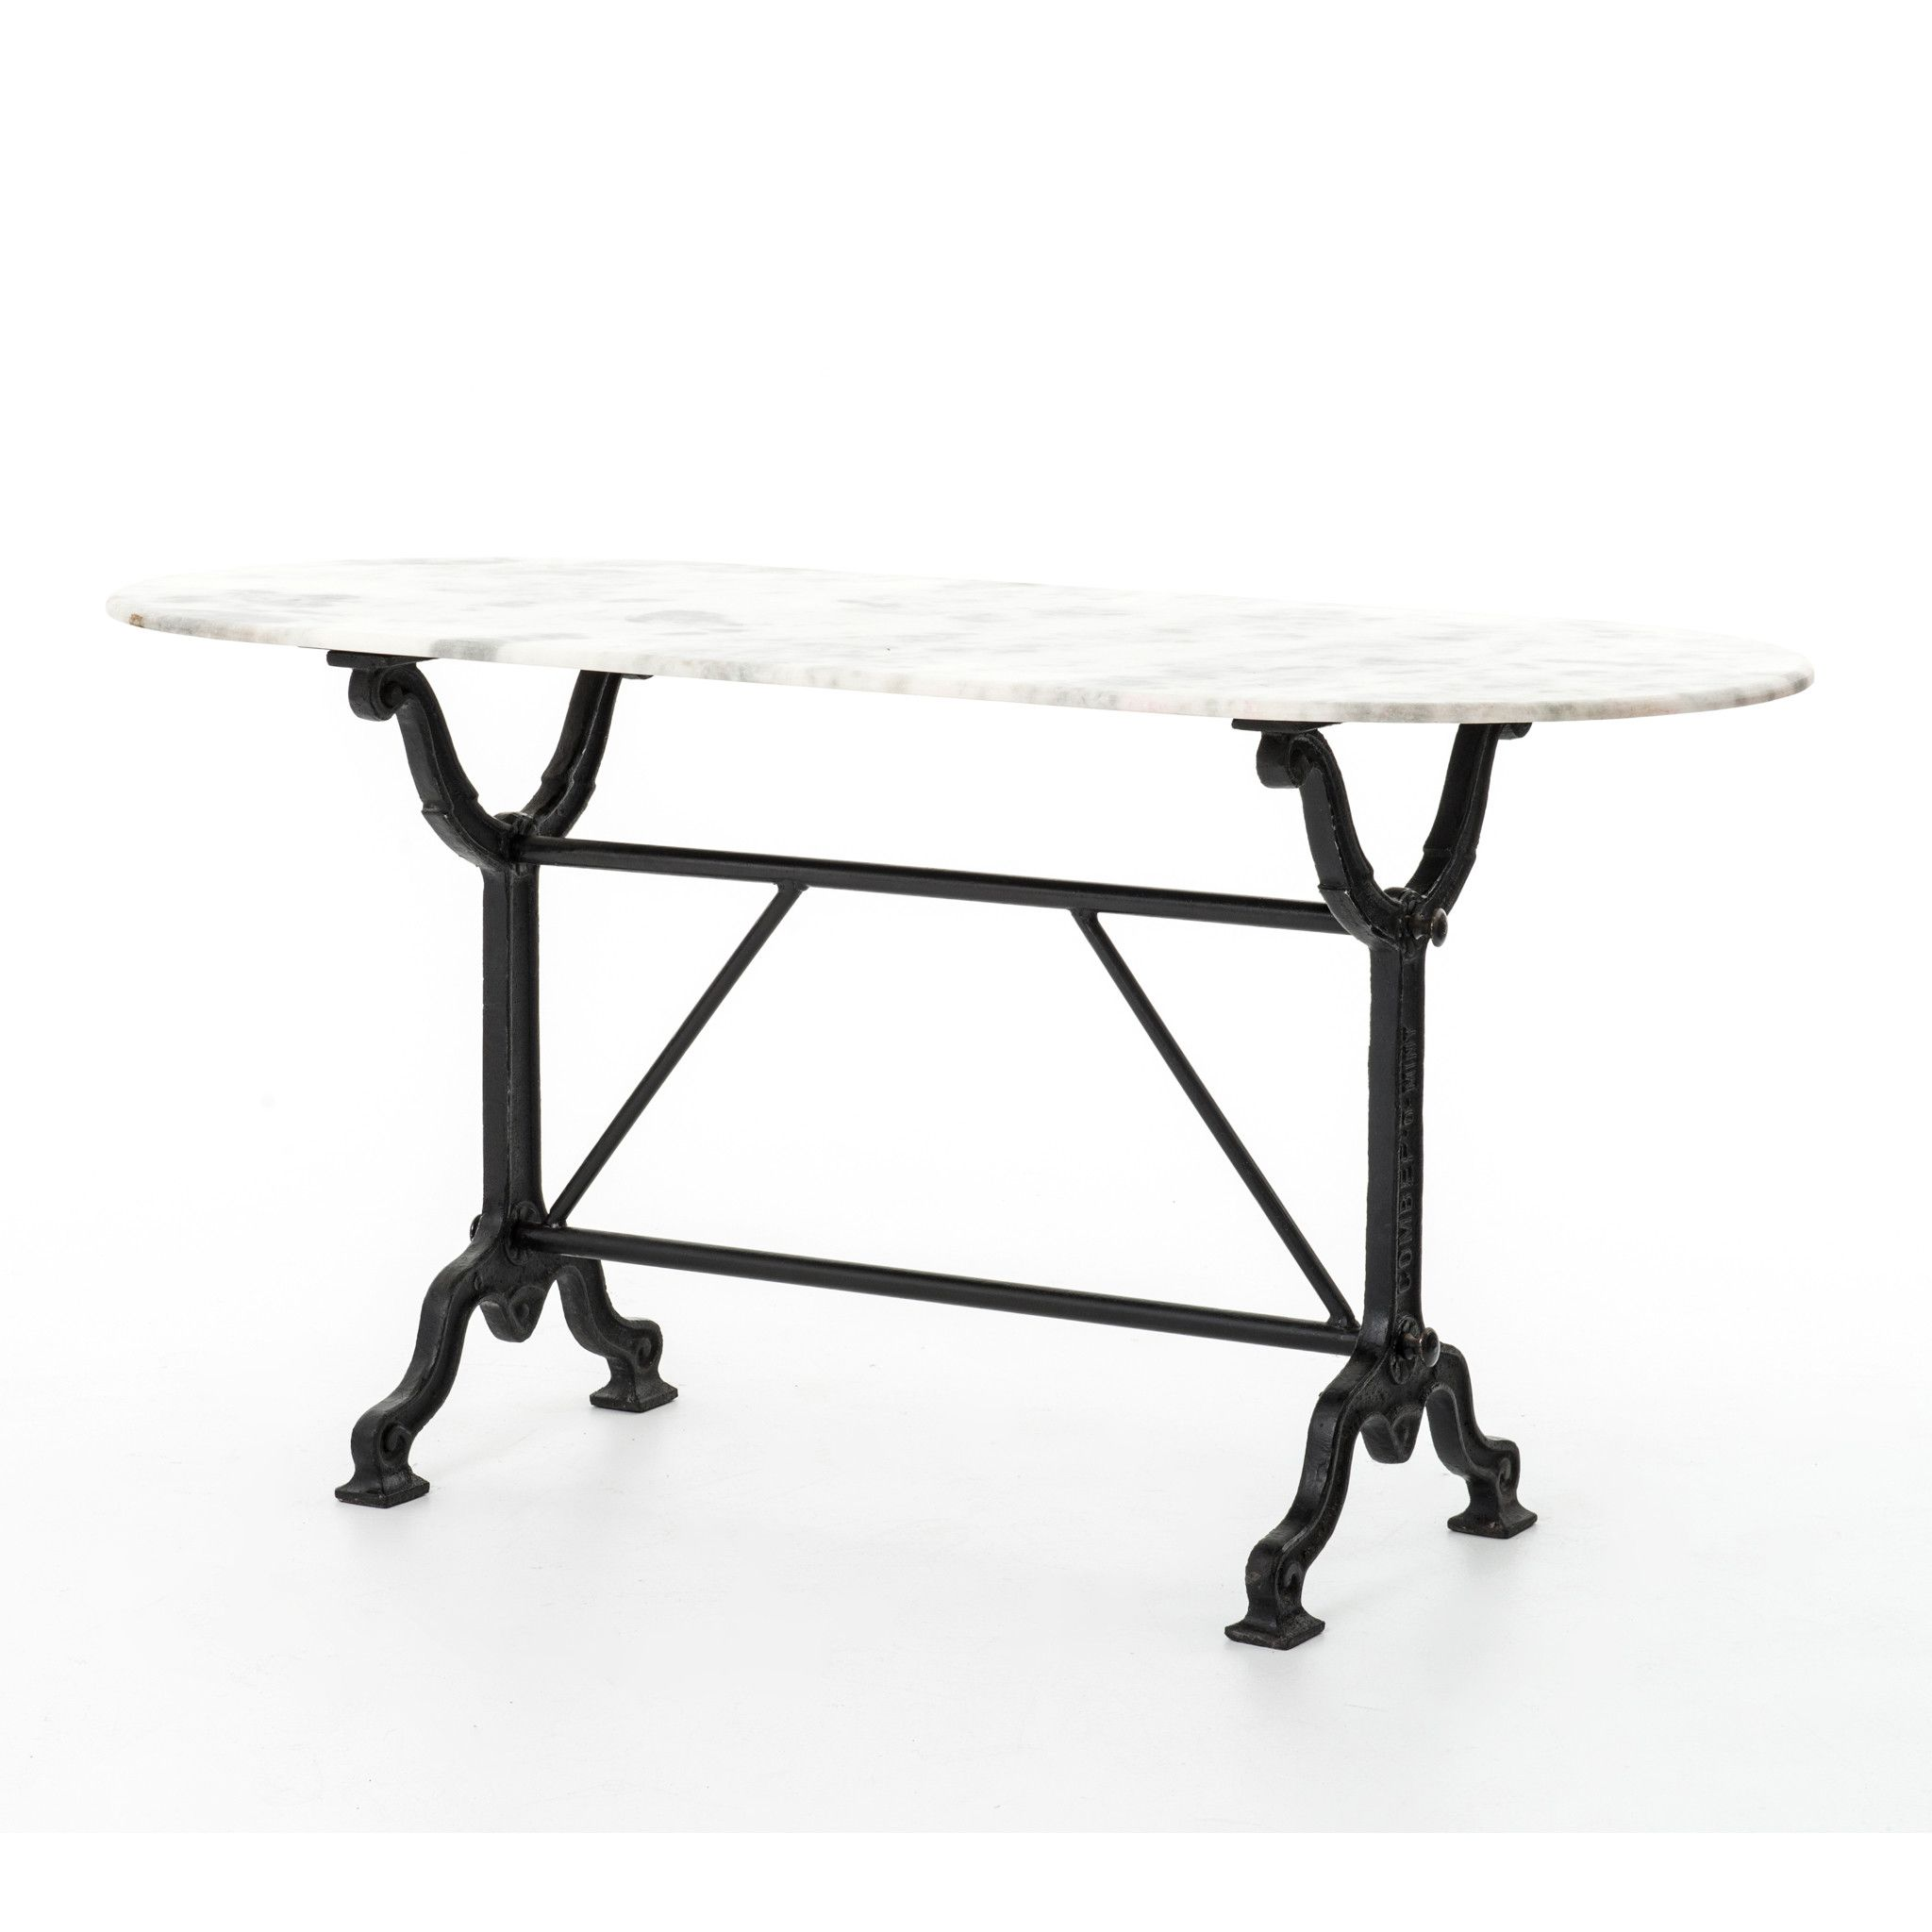 Shop Wayfair for Writing Desks to match every style and bud